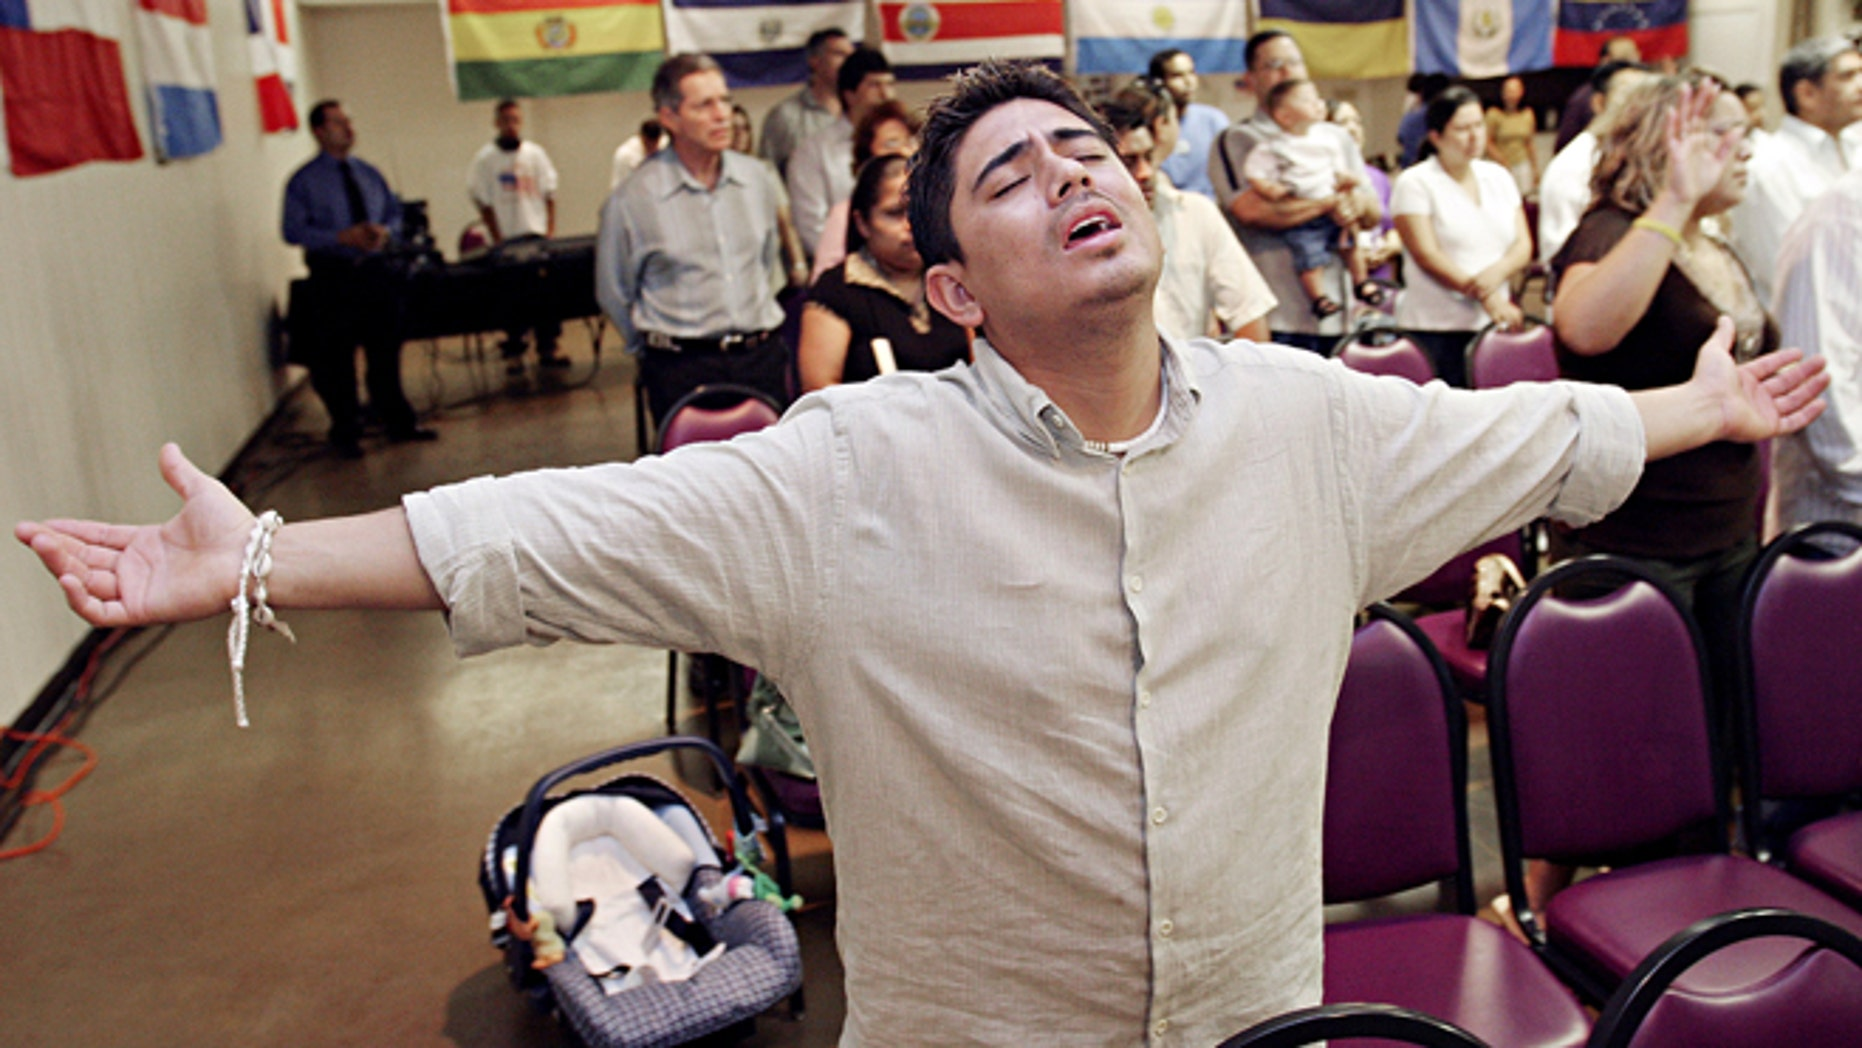 MESA, AZ - APRIL 9:  Charlie Anaya, of Phoenix, prays during the worship service at Iglesia Palabra de Vida April 9, 2006 in Mesa, Arizona. There are approximately 300 evangelical Hispanic churches with 15,000 members in the Phoenix area that have been instrumental in organizing for immigrants rights.  (Photo by Jeff Topping/Getty Images)